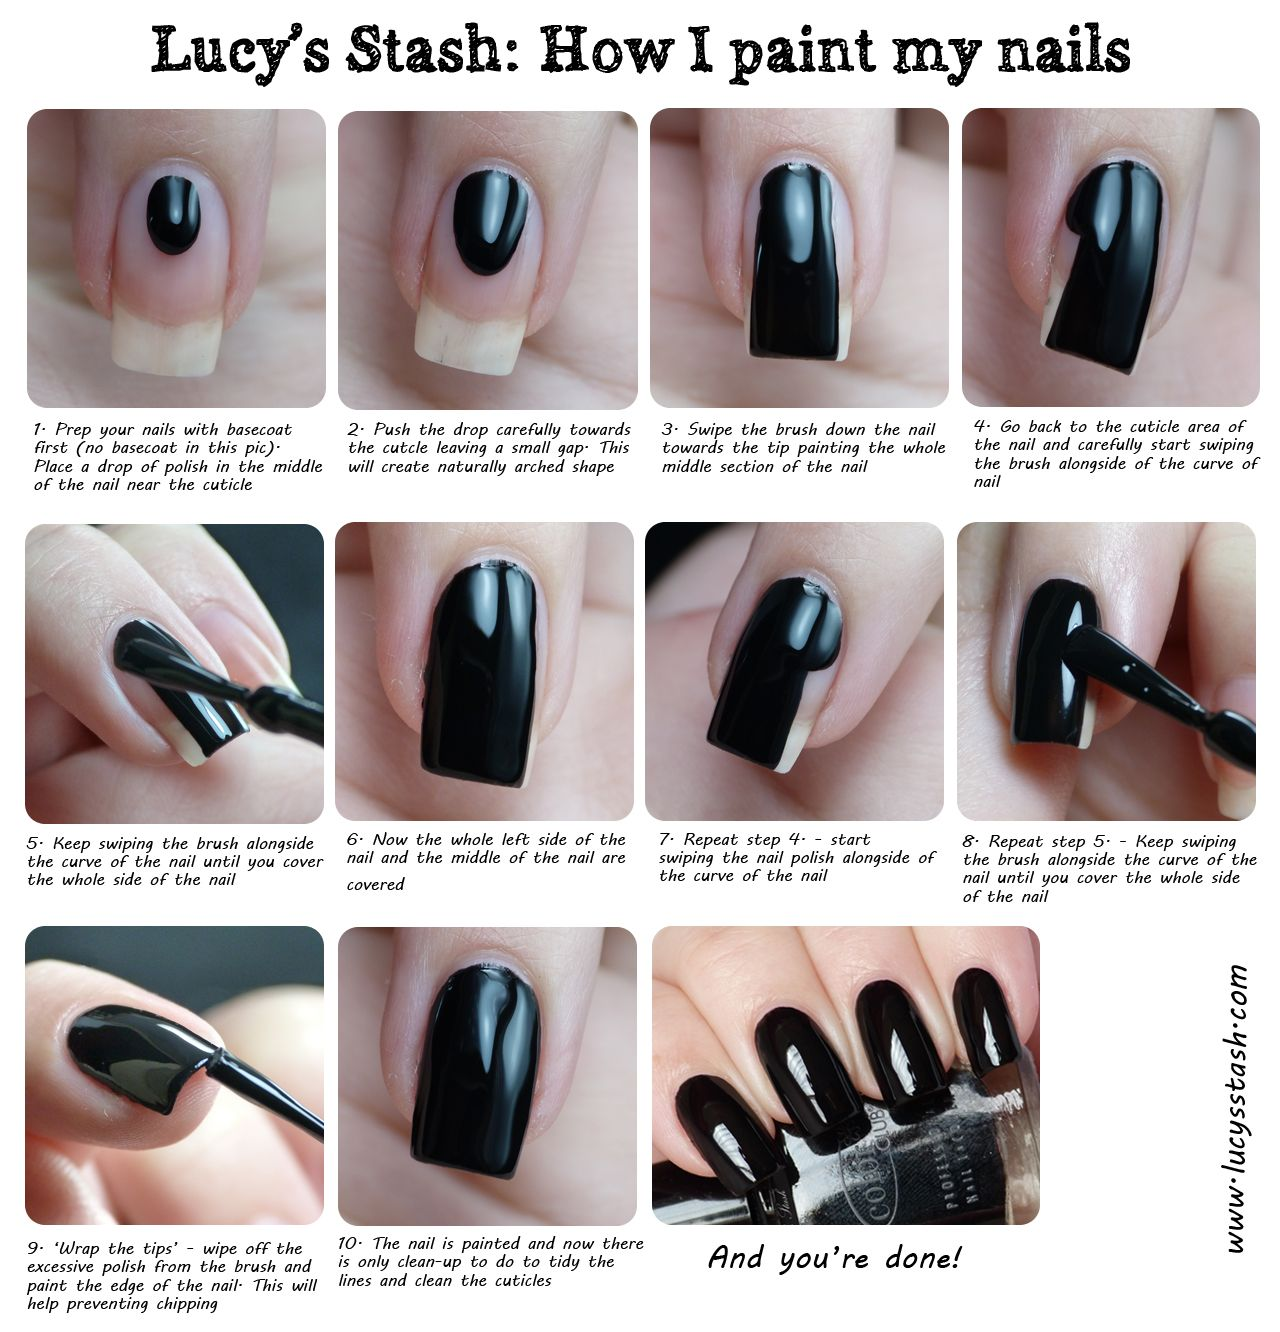 Lucy's Stash: How I Paint My Nails Tutorial Http://www